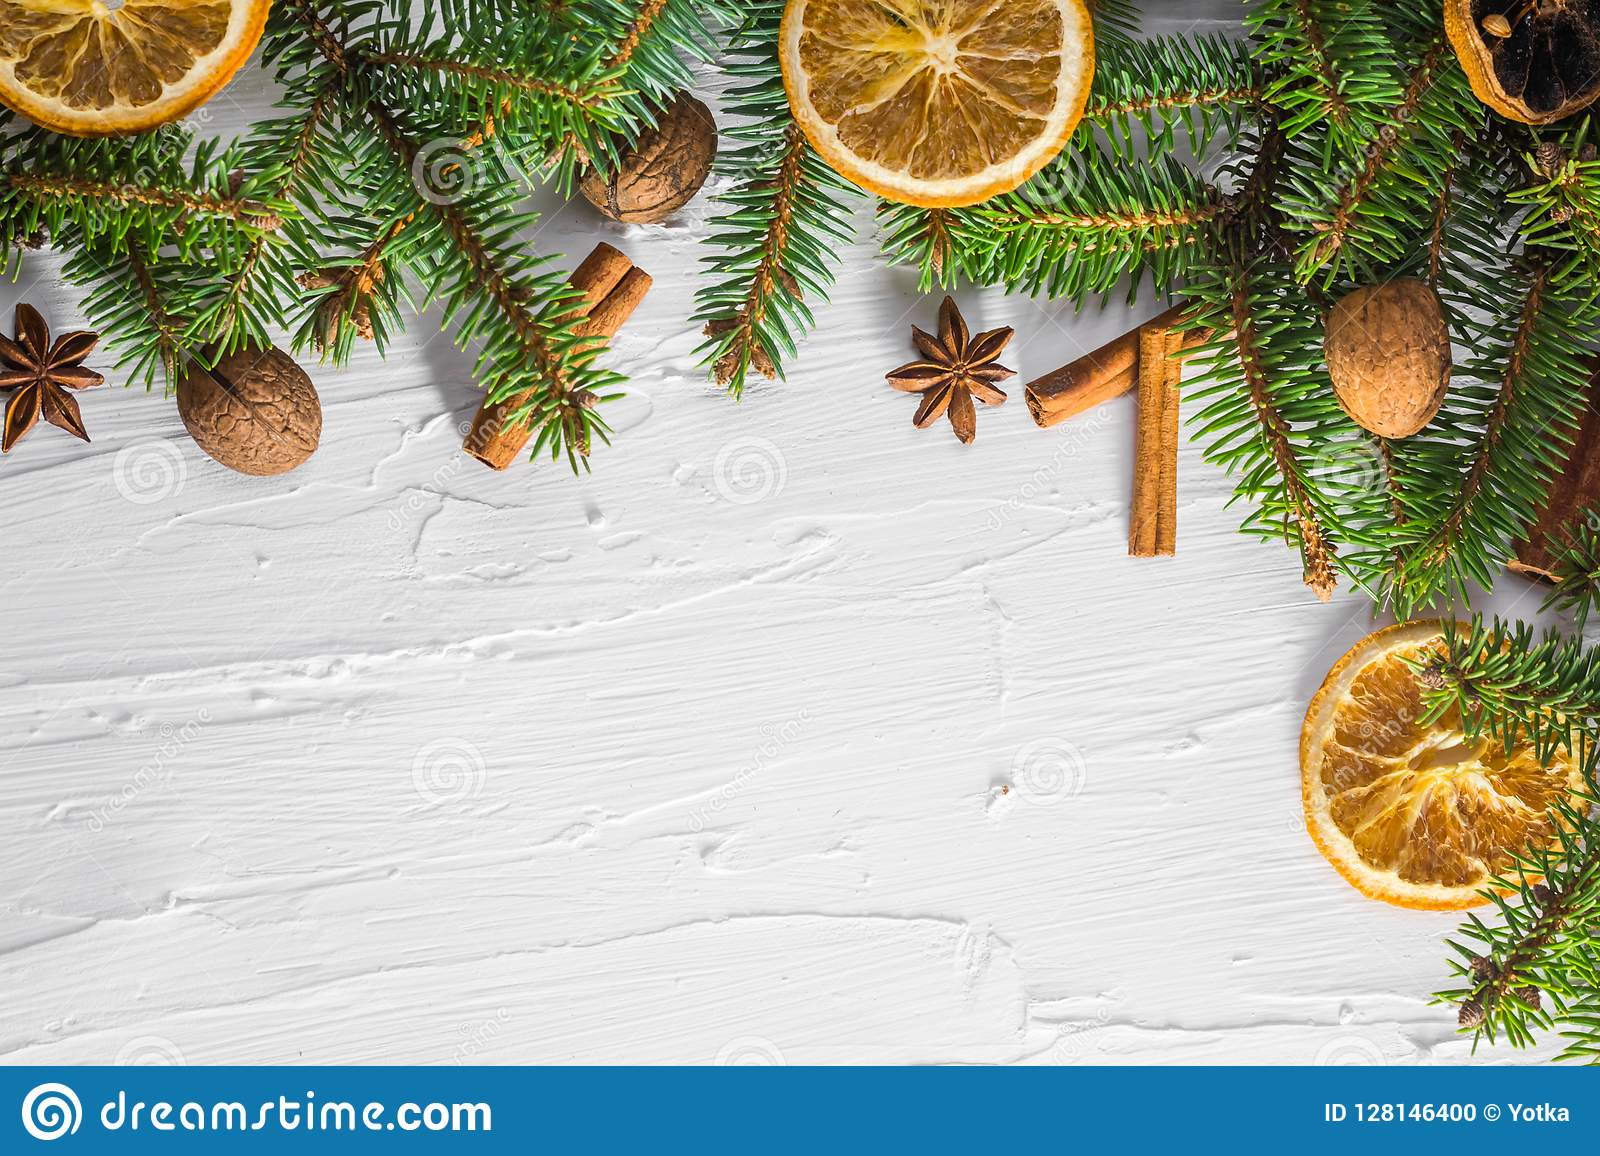 Christmas white background fresh twigs conifer tree dried citrus